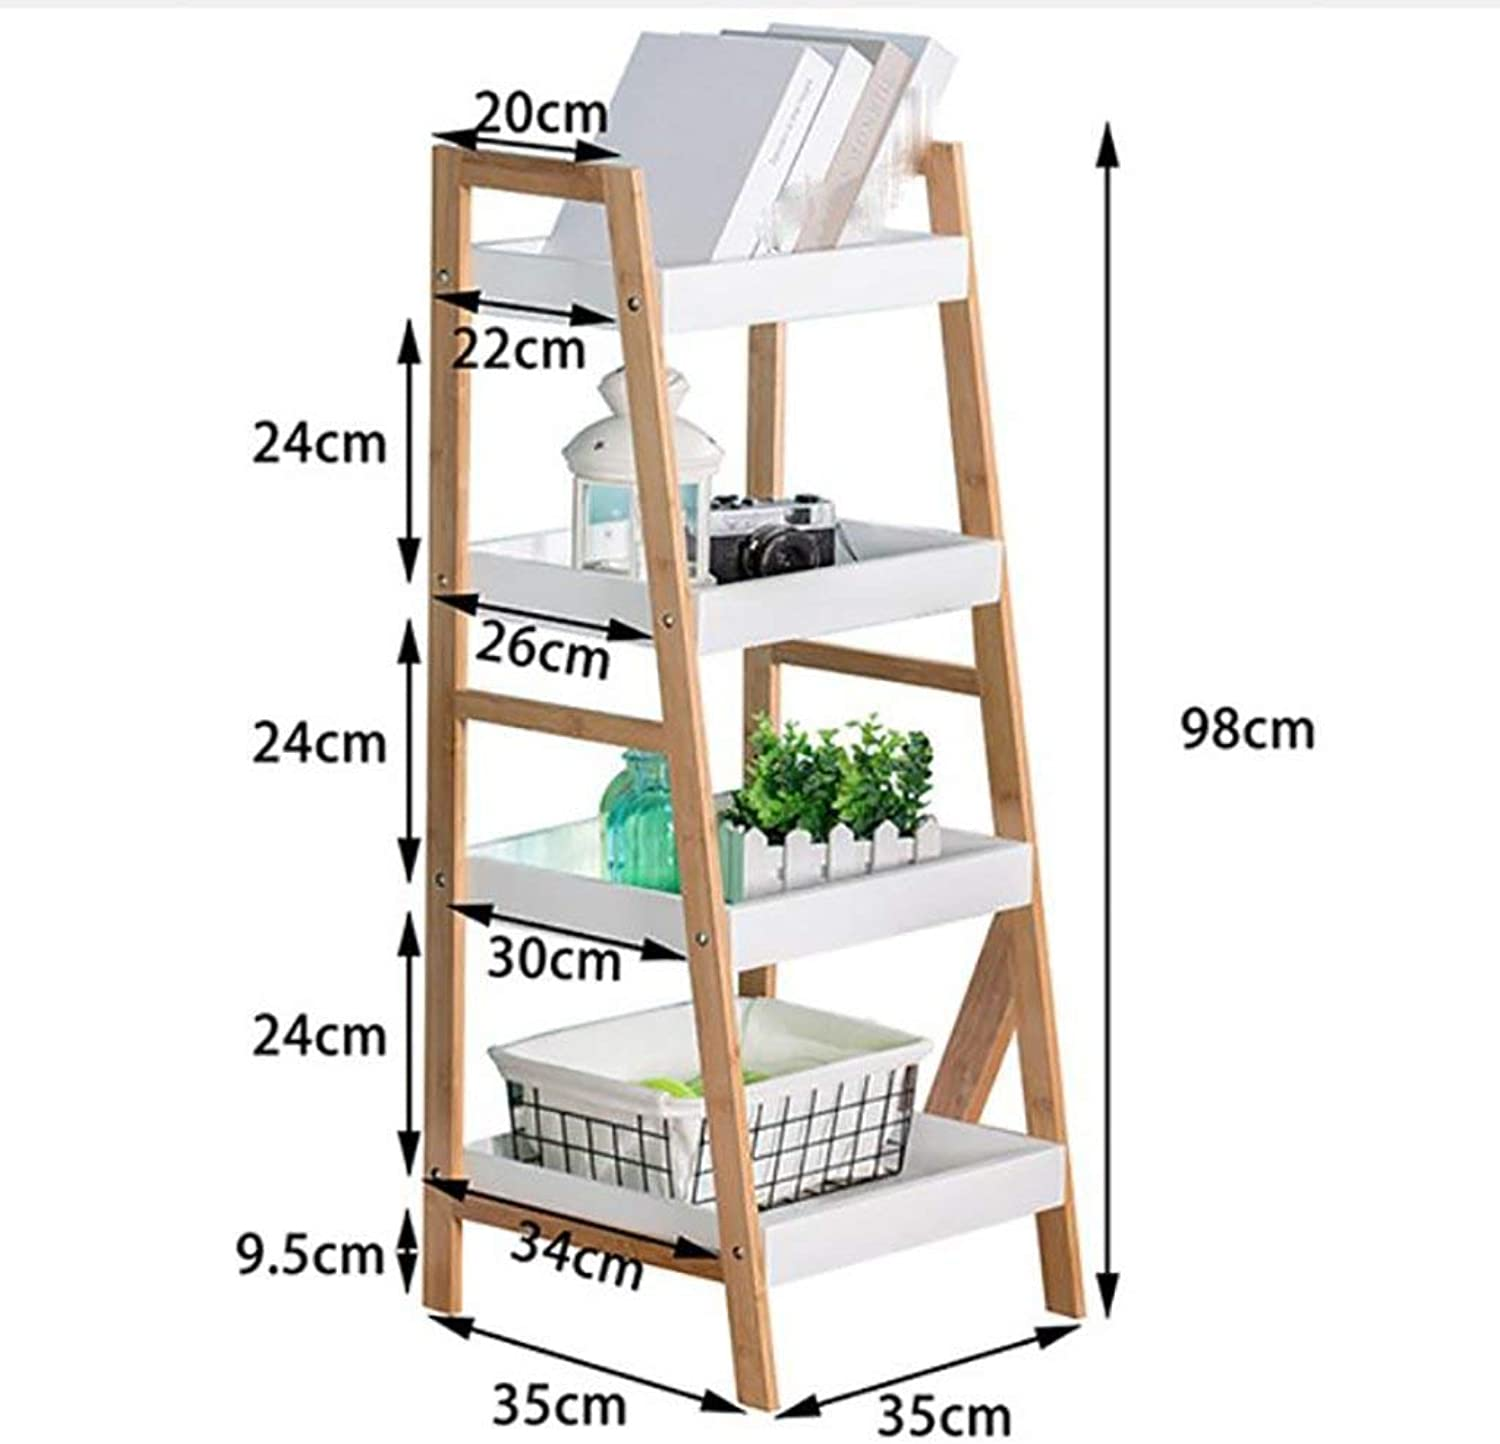 Multi-Layer Solid Wood Floor-Standing Multi-Function Shelf, White Living Room Bedroom Corner Organize Storage Box - Save Space,XXXL